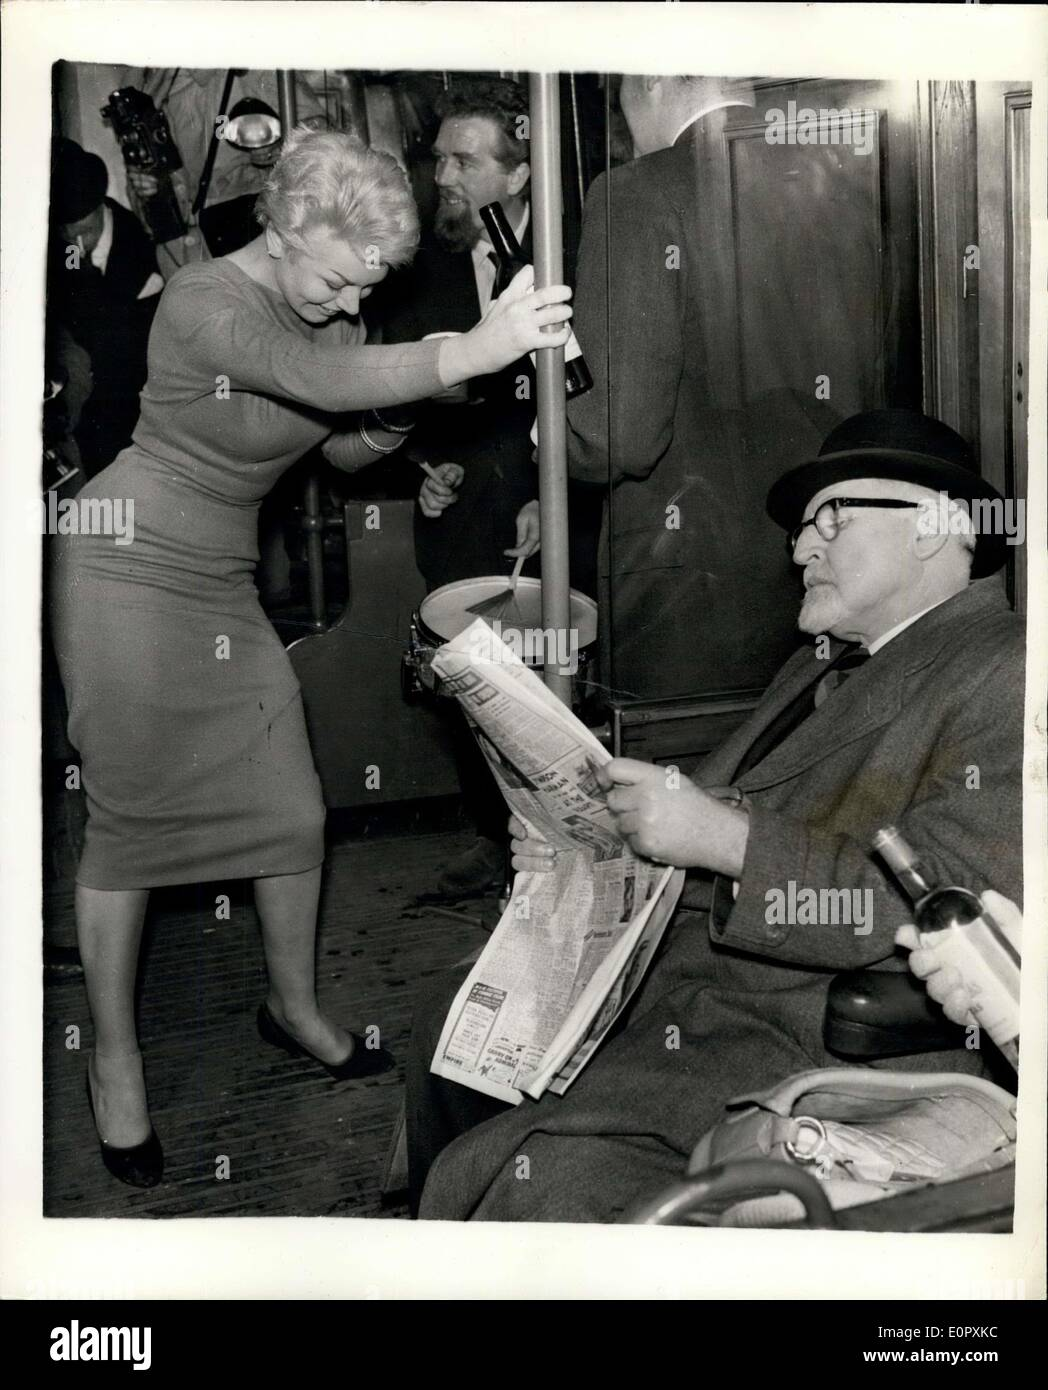 Apr. 12, 1957 - The Queen's Cousin Goes Rockin' At A Fantastic Party On An Underground Train The smart set went Underground last night and rocked non-stop around the Inner Circle route from Charing Cross to Charing Cross. They skiffled and rocked their way through Euston, Kings Cross, Farringdon, and Edgware-road, and the price of the round tour was two shillings. That's what each of the 75 guests - including the Queen's cousin, the Hon. Gerald Lascelles, paid for their tickets - Stock Image